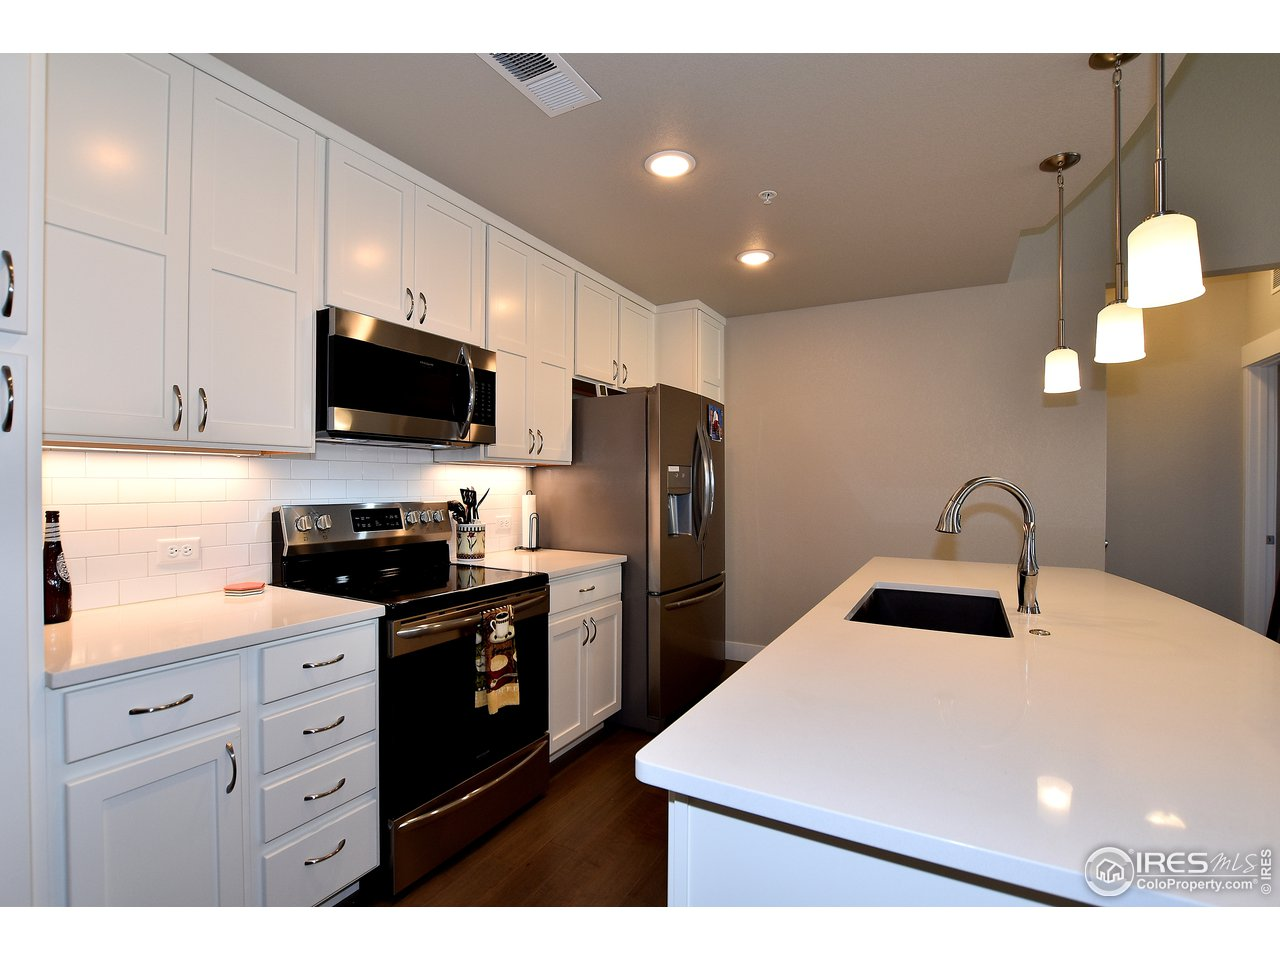 Upgrade white cabinetry and spacious island